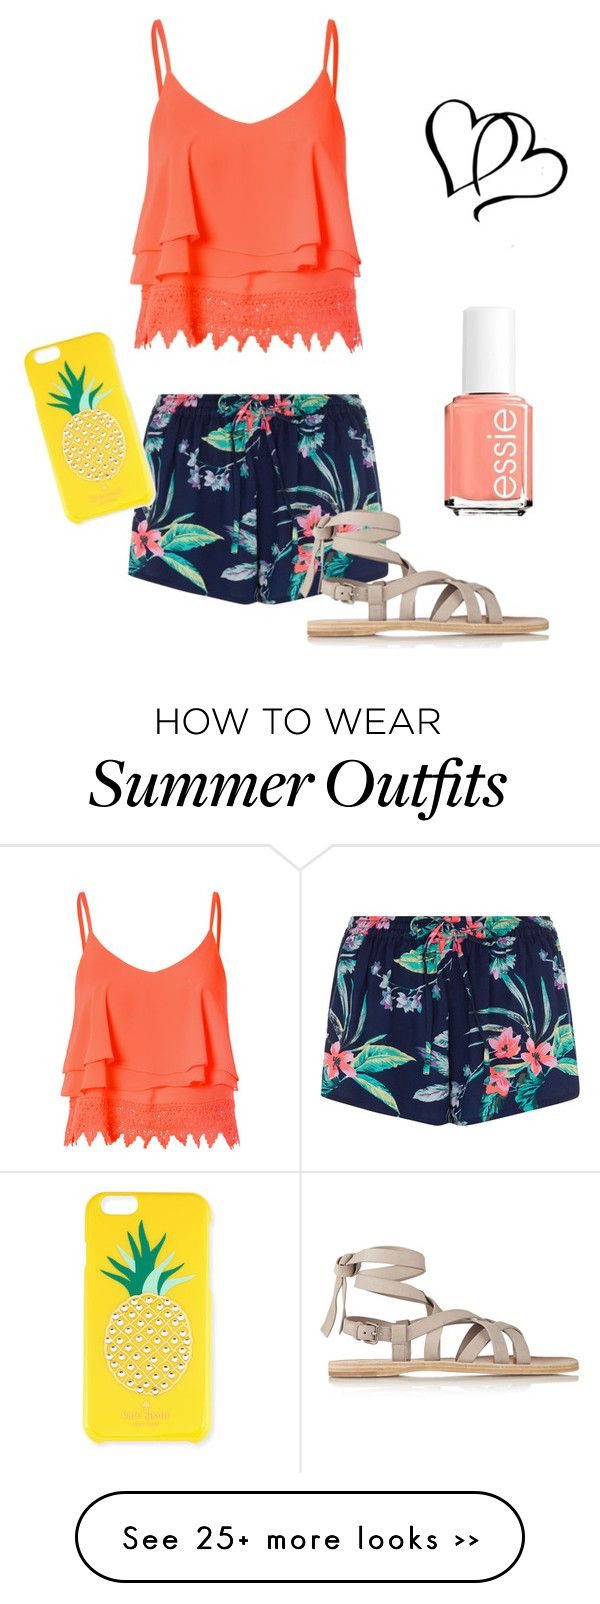 """Orange outfit"" by chrisantal on Polyvore"